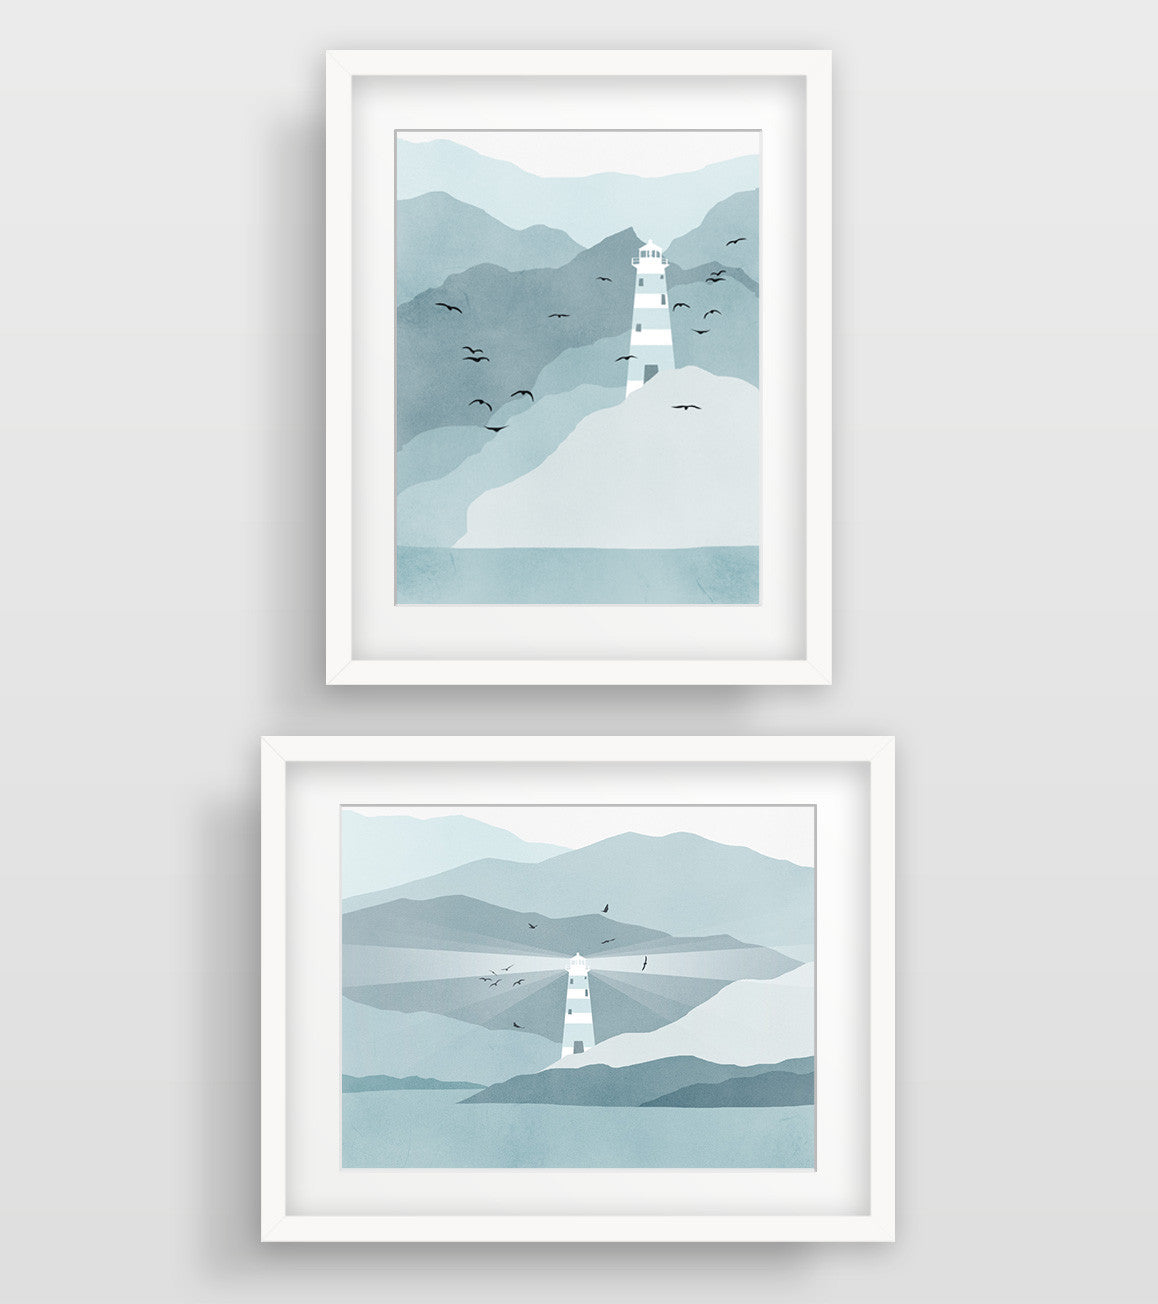 Lighthouse Nautical Decor in Teal and Grey - Wall Art Set of 2